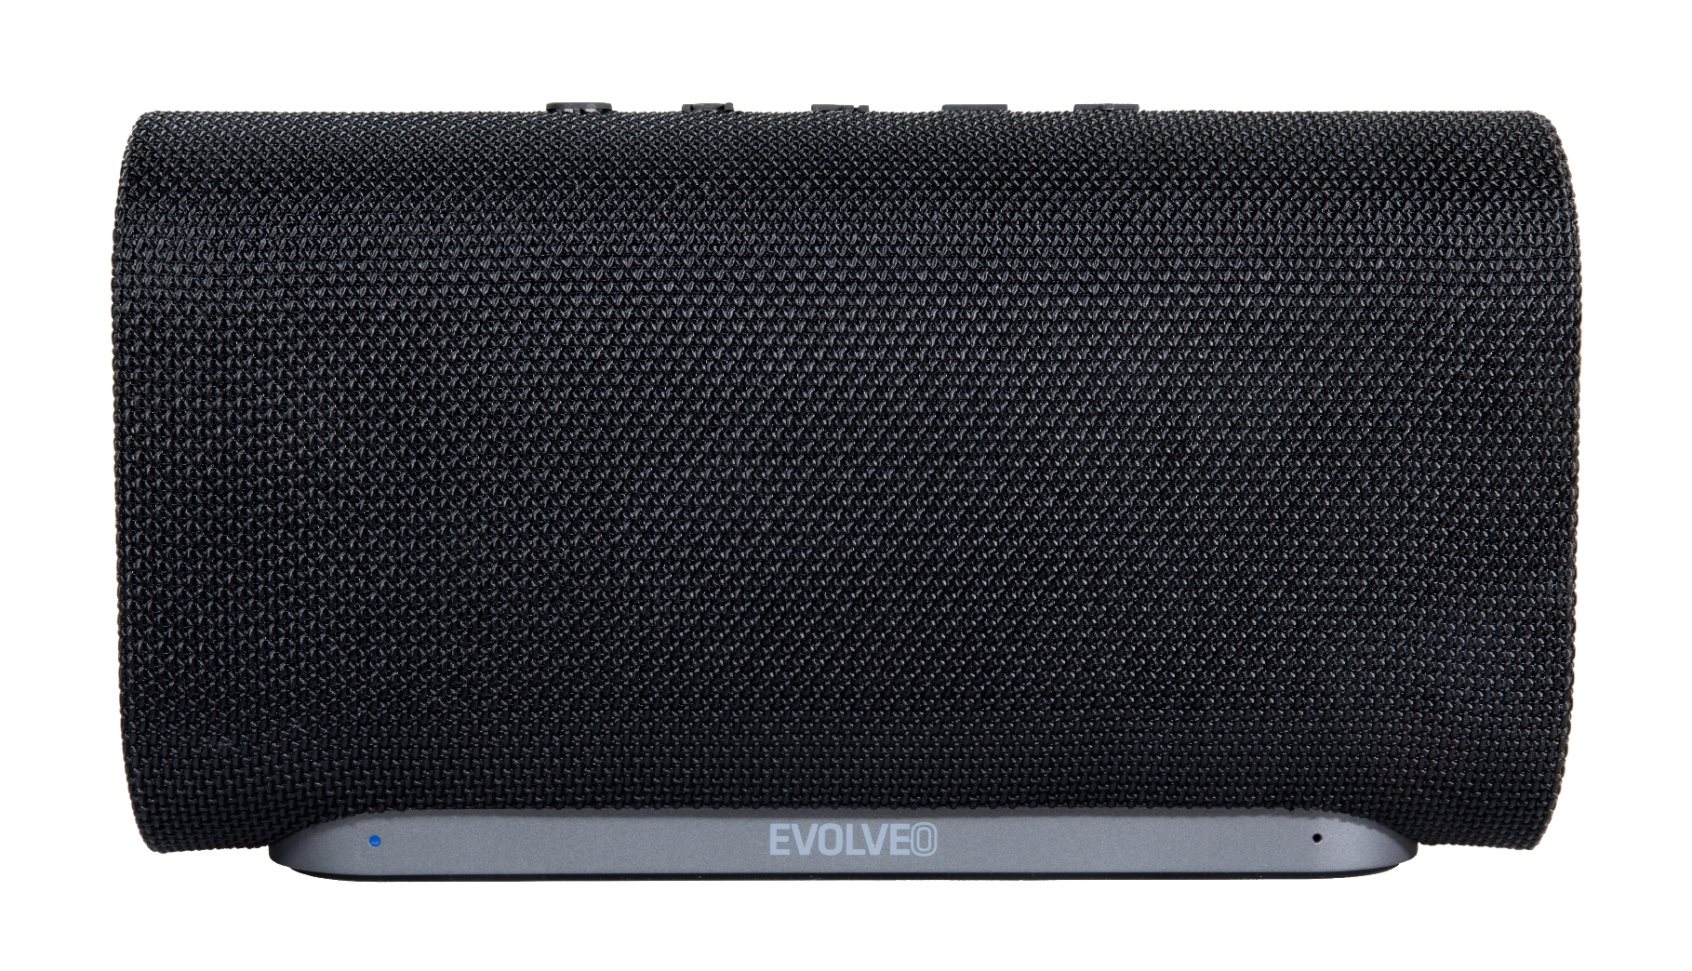 EVOLVEO SupremeBeat F7, Bluetooth speaker]